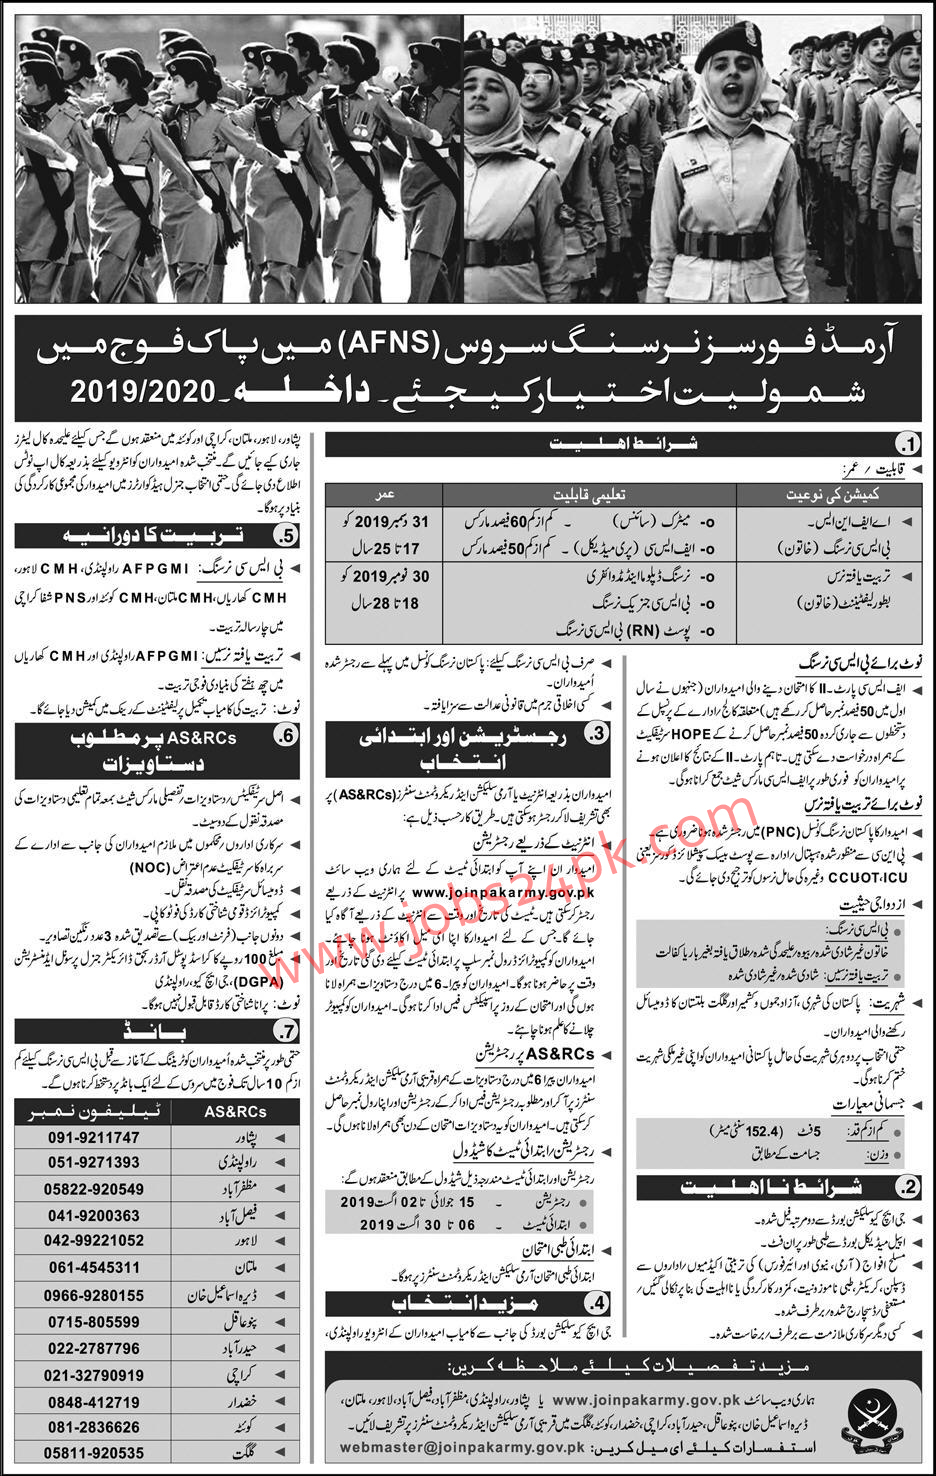 join-pakistan-army-as-afns-afns-jobs-2019